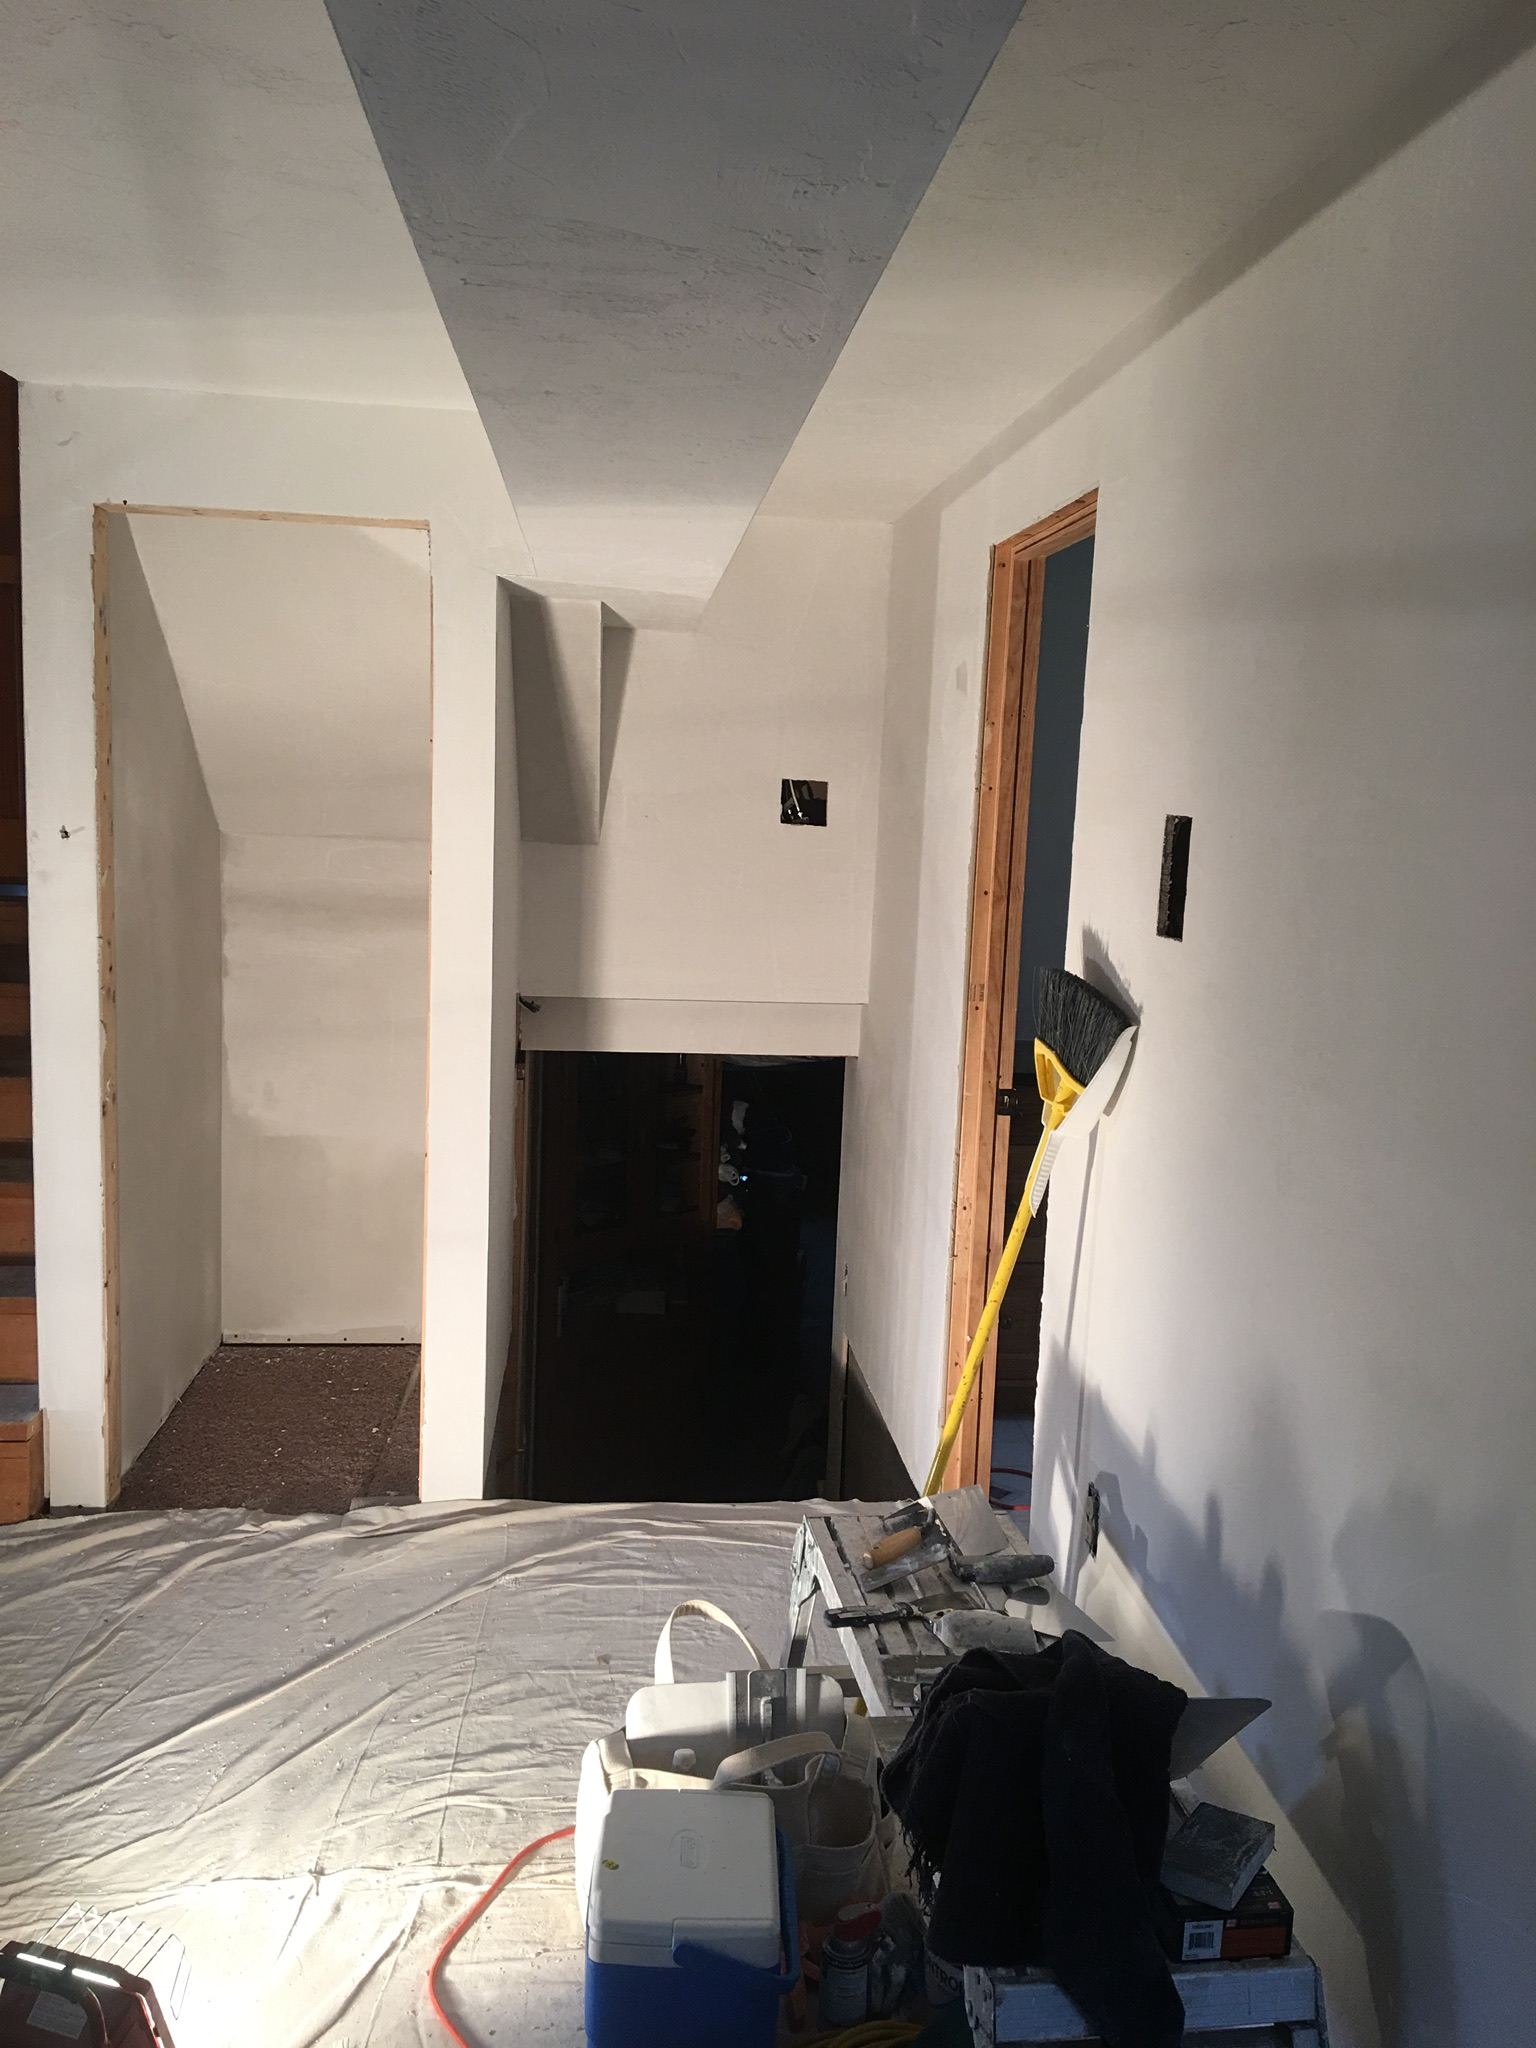 Sheetrock/Plaster Board, Skim Coat Plastering & Painting